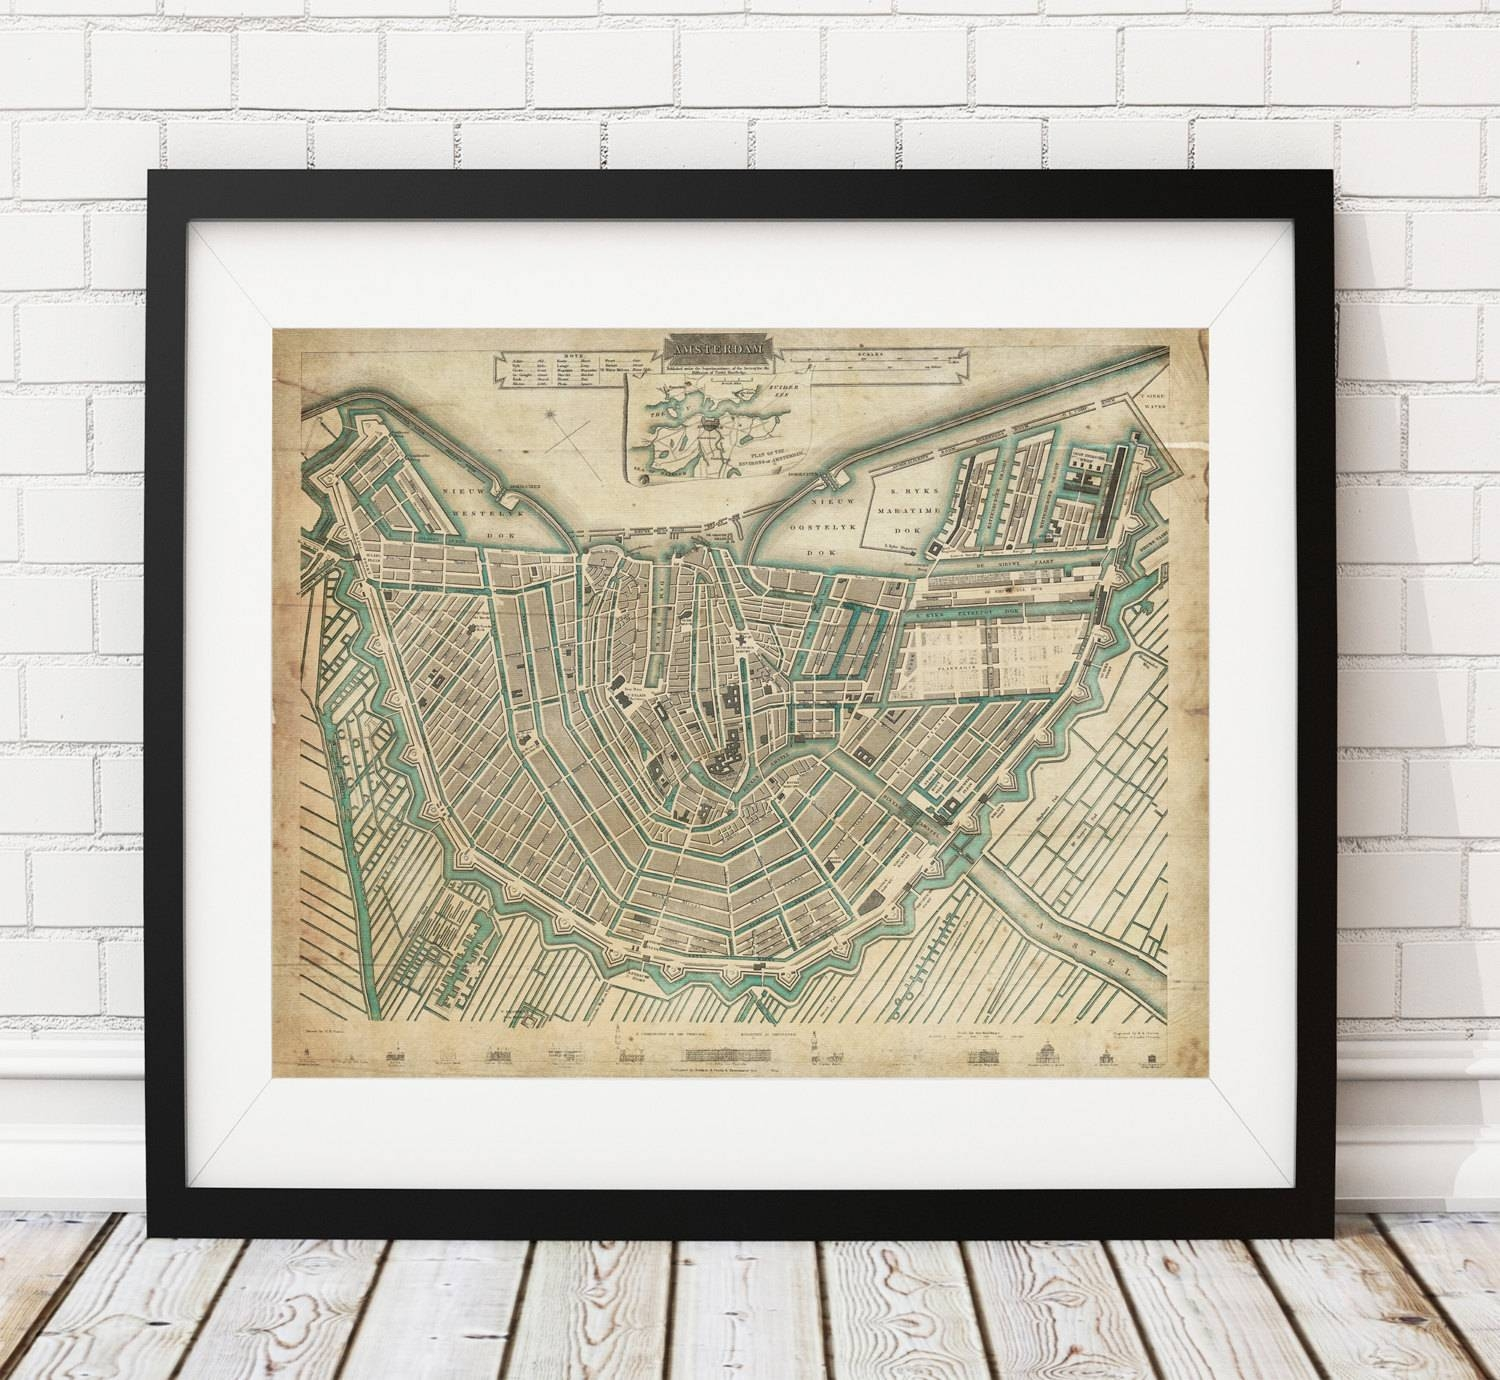 Amsterdam Map Print, Vintage Map Art, Antique Map, Wall Art Within Most Current Antique Map Wall Art (View 1 of 20)